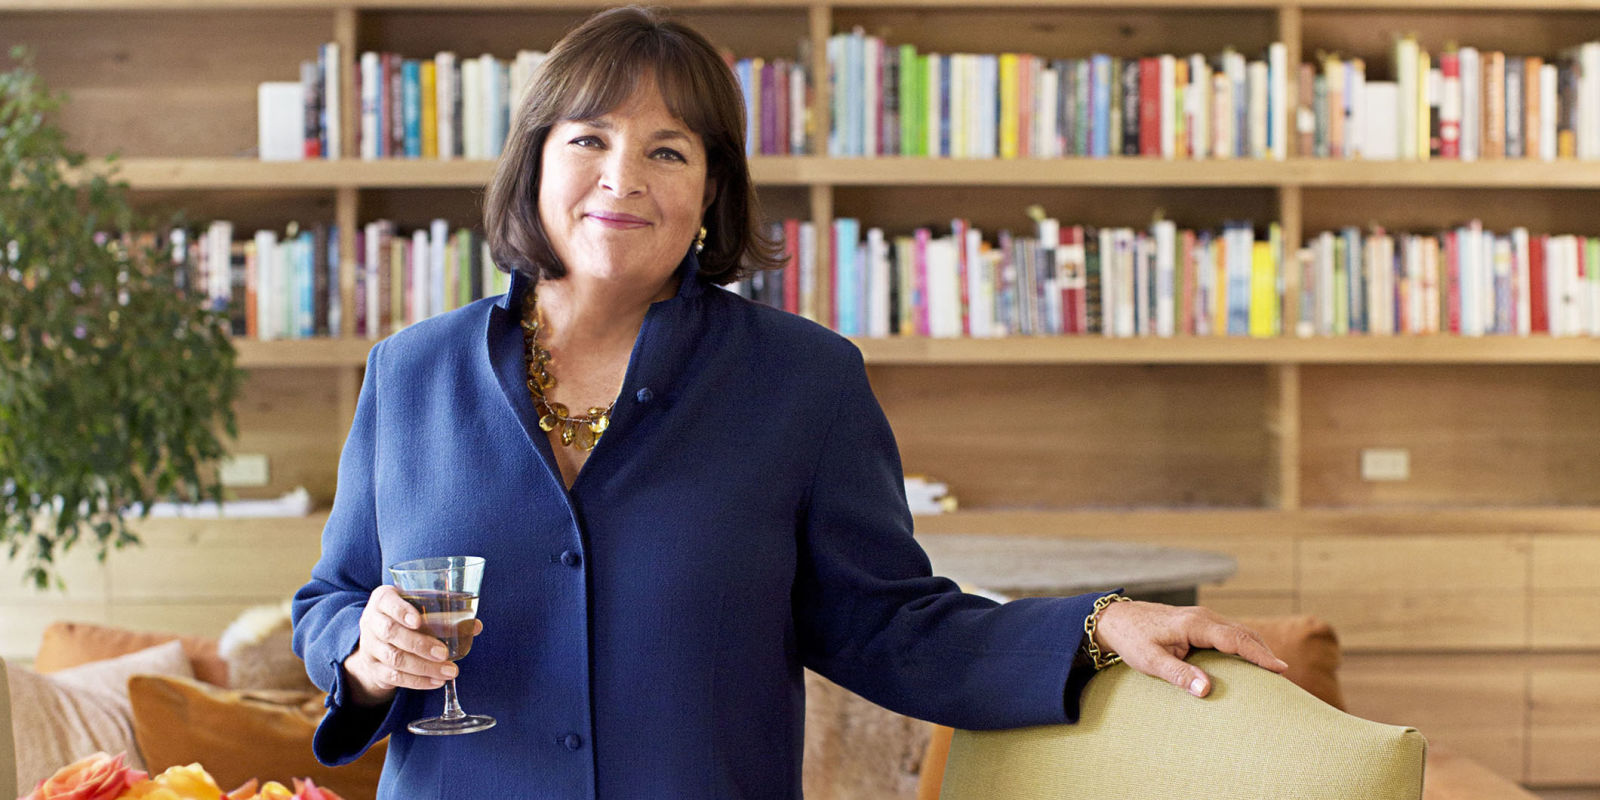 Ina Garten Barn 13 things you never knew about ina garten - ina garten facts